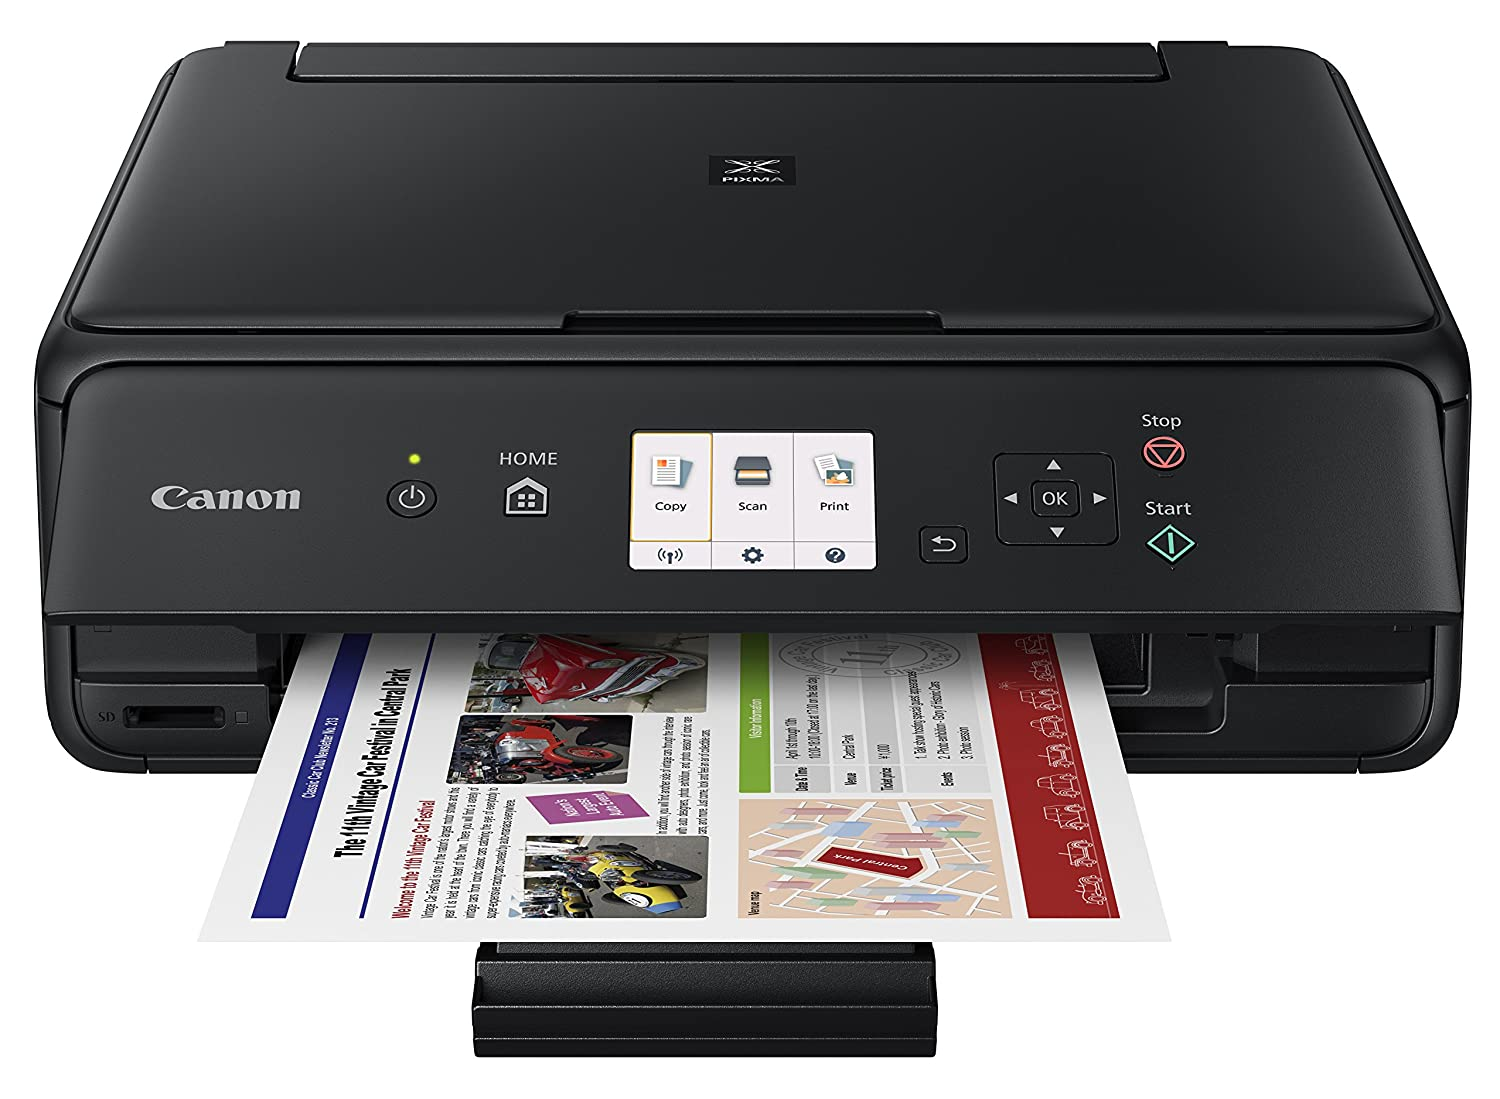 Top 11 Best Printers for Teachers under $100 Reviews 9